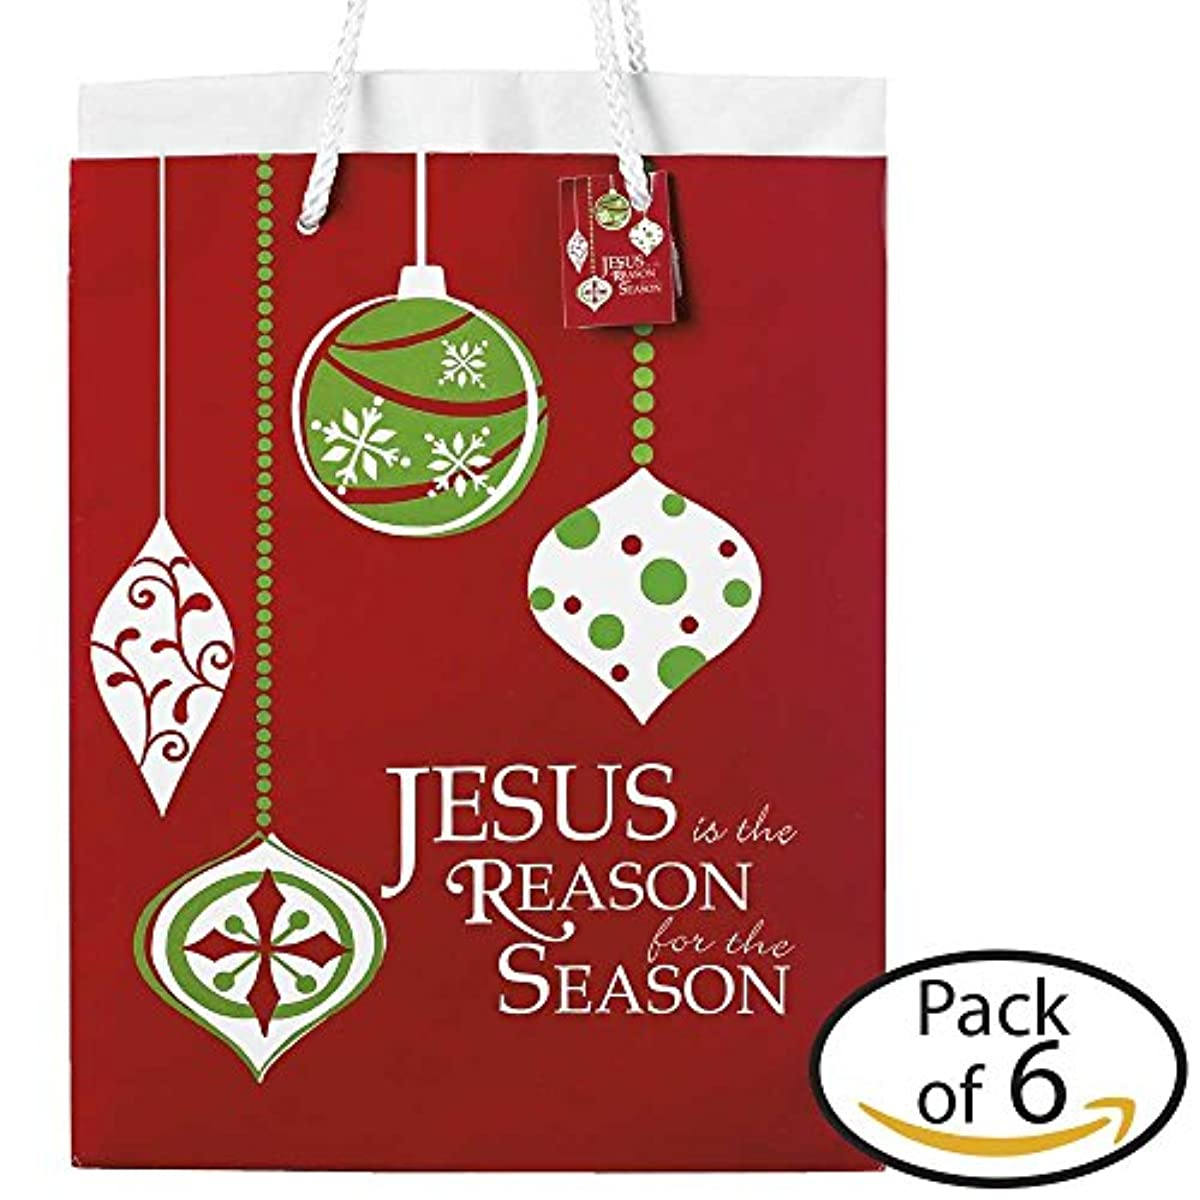 Jesus Is The Reason Cranberry Christmas Medium Tissue Paper and Gift Bags, Pack of 6